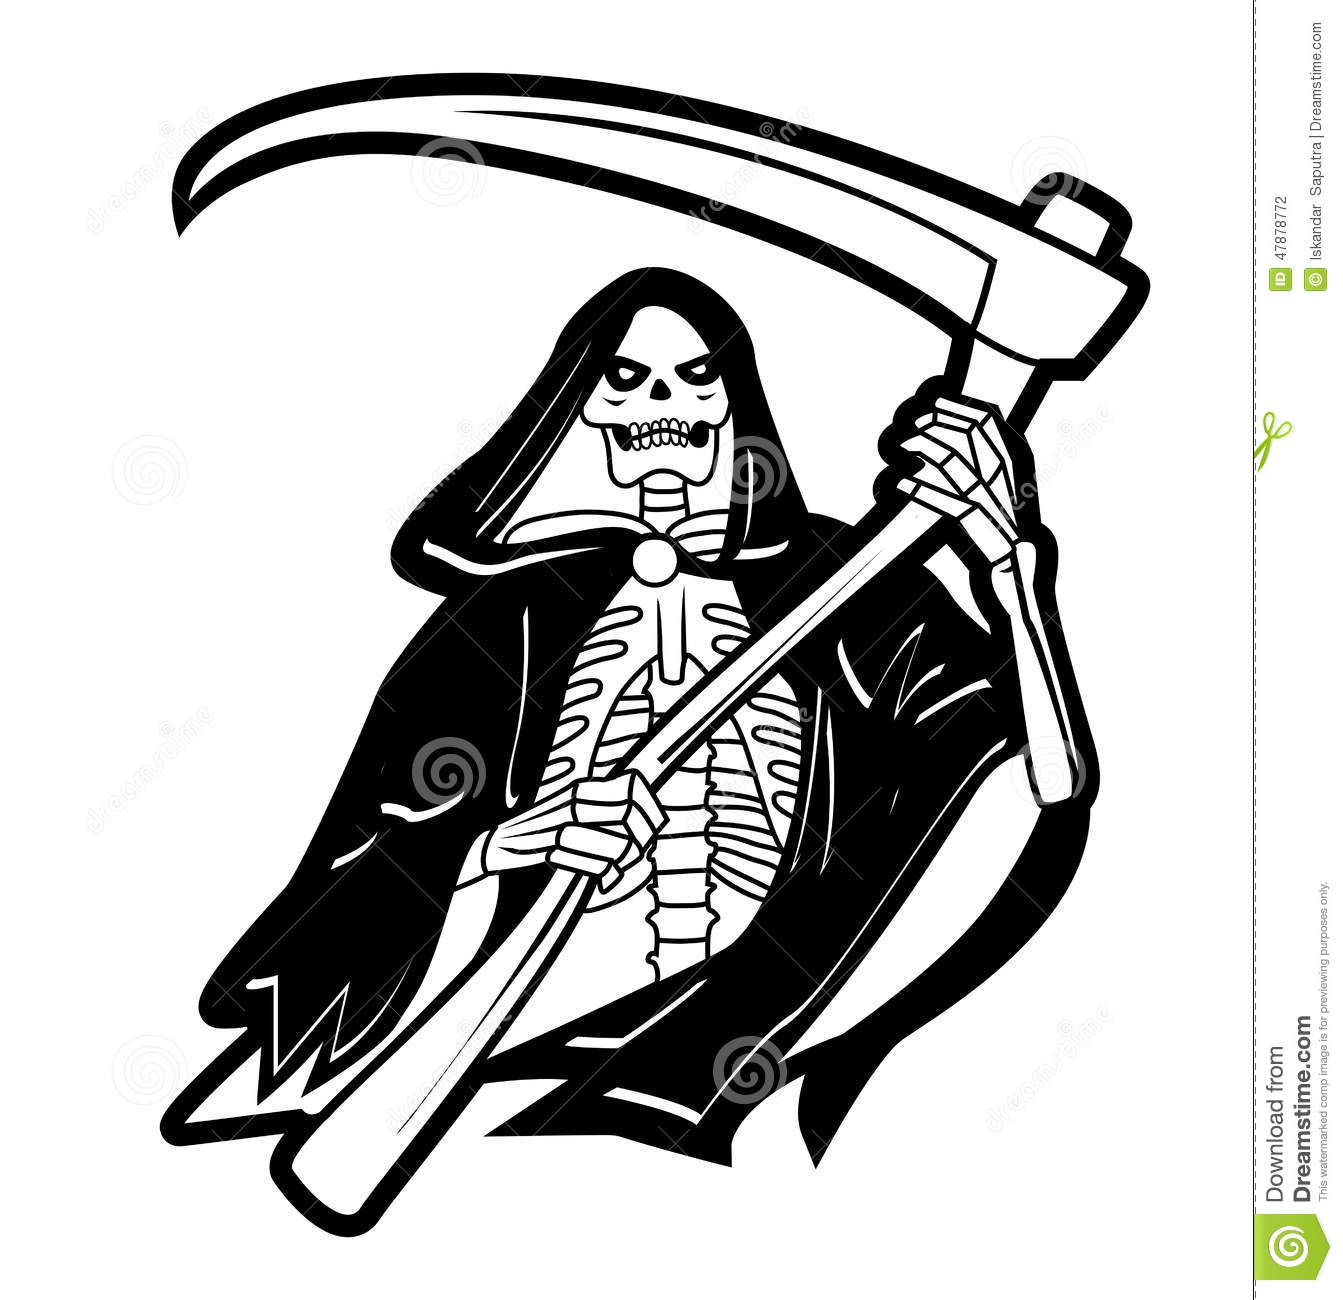 20196048 Winking Flowey Undertale together with Stock Illustration Grim Reaper Eps Illustration Design Image47878772 besides Skull Drawings further Stock Illustration Bats Seamless Background Vector Illustration Image59165939 in addition 570620215264977378. on scary evil s